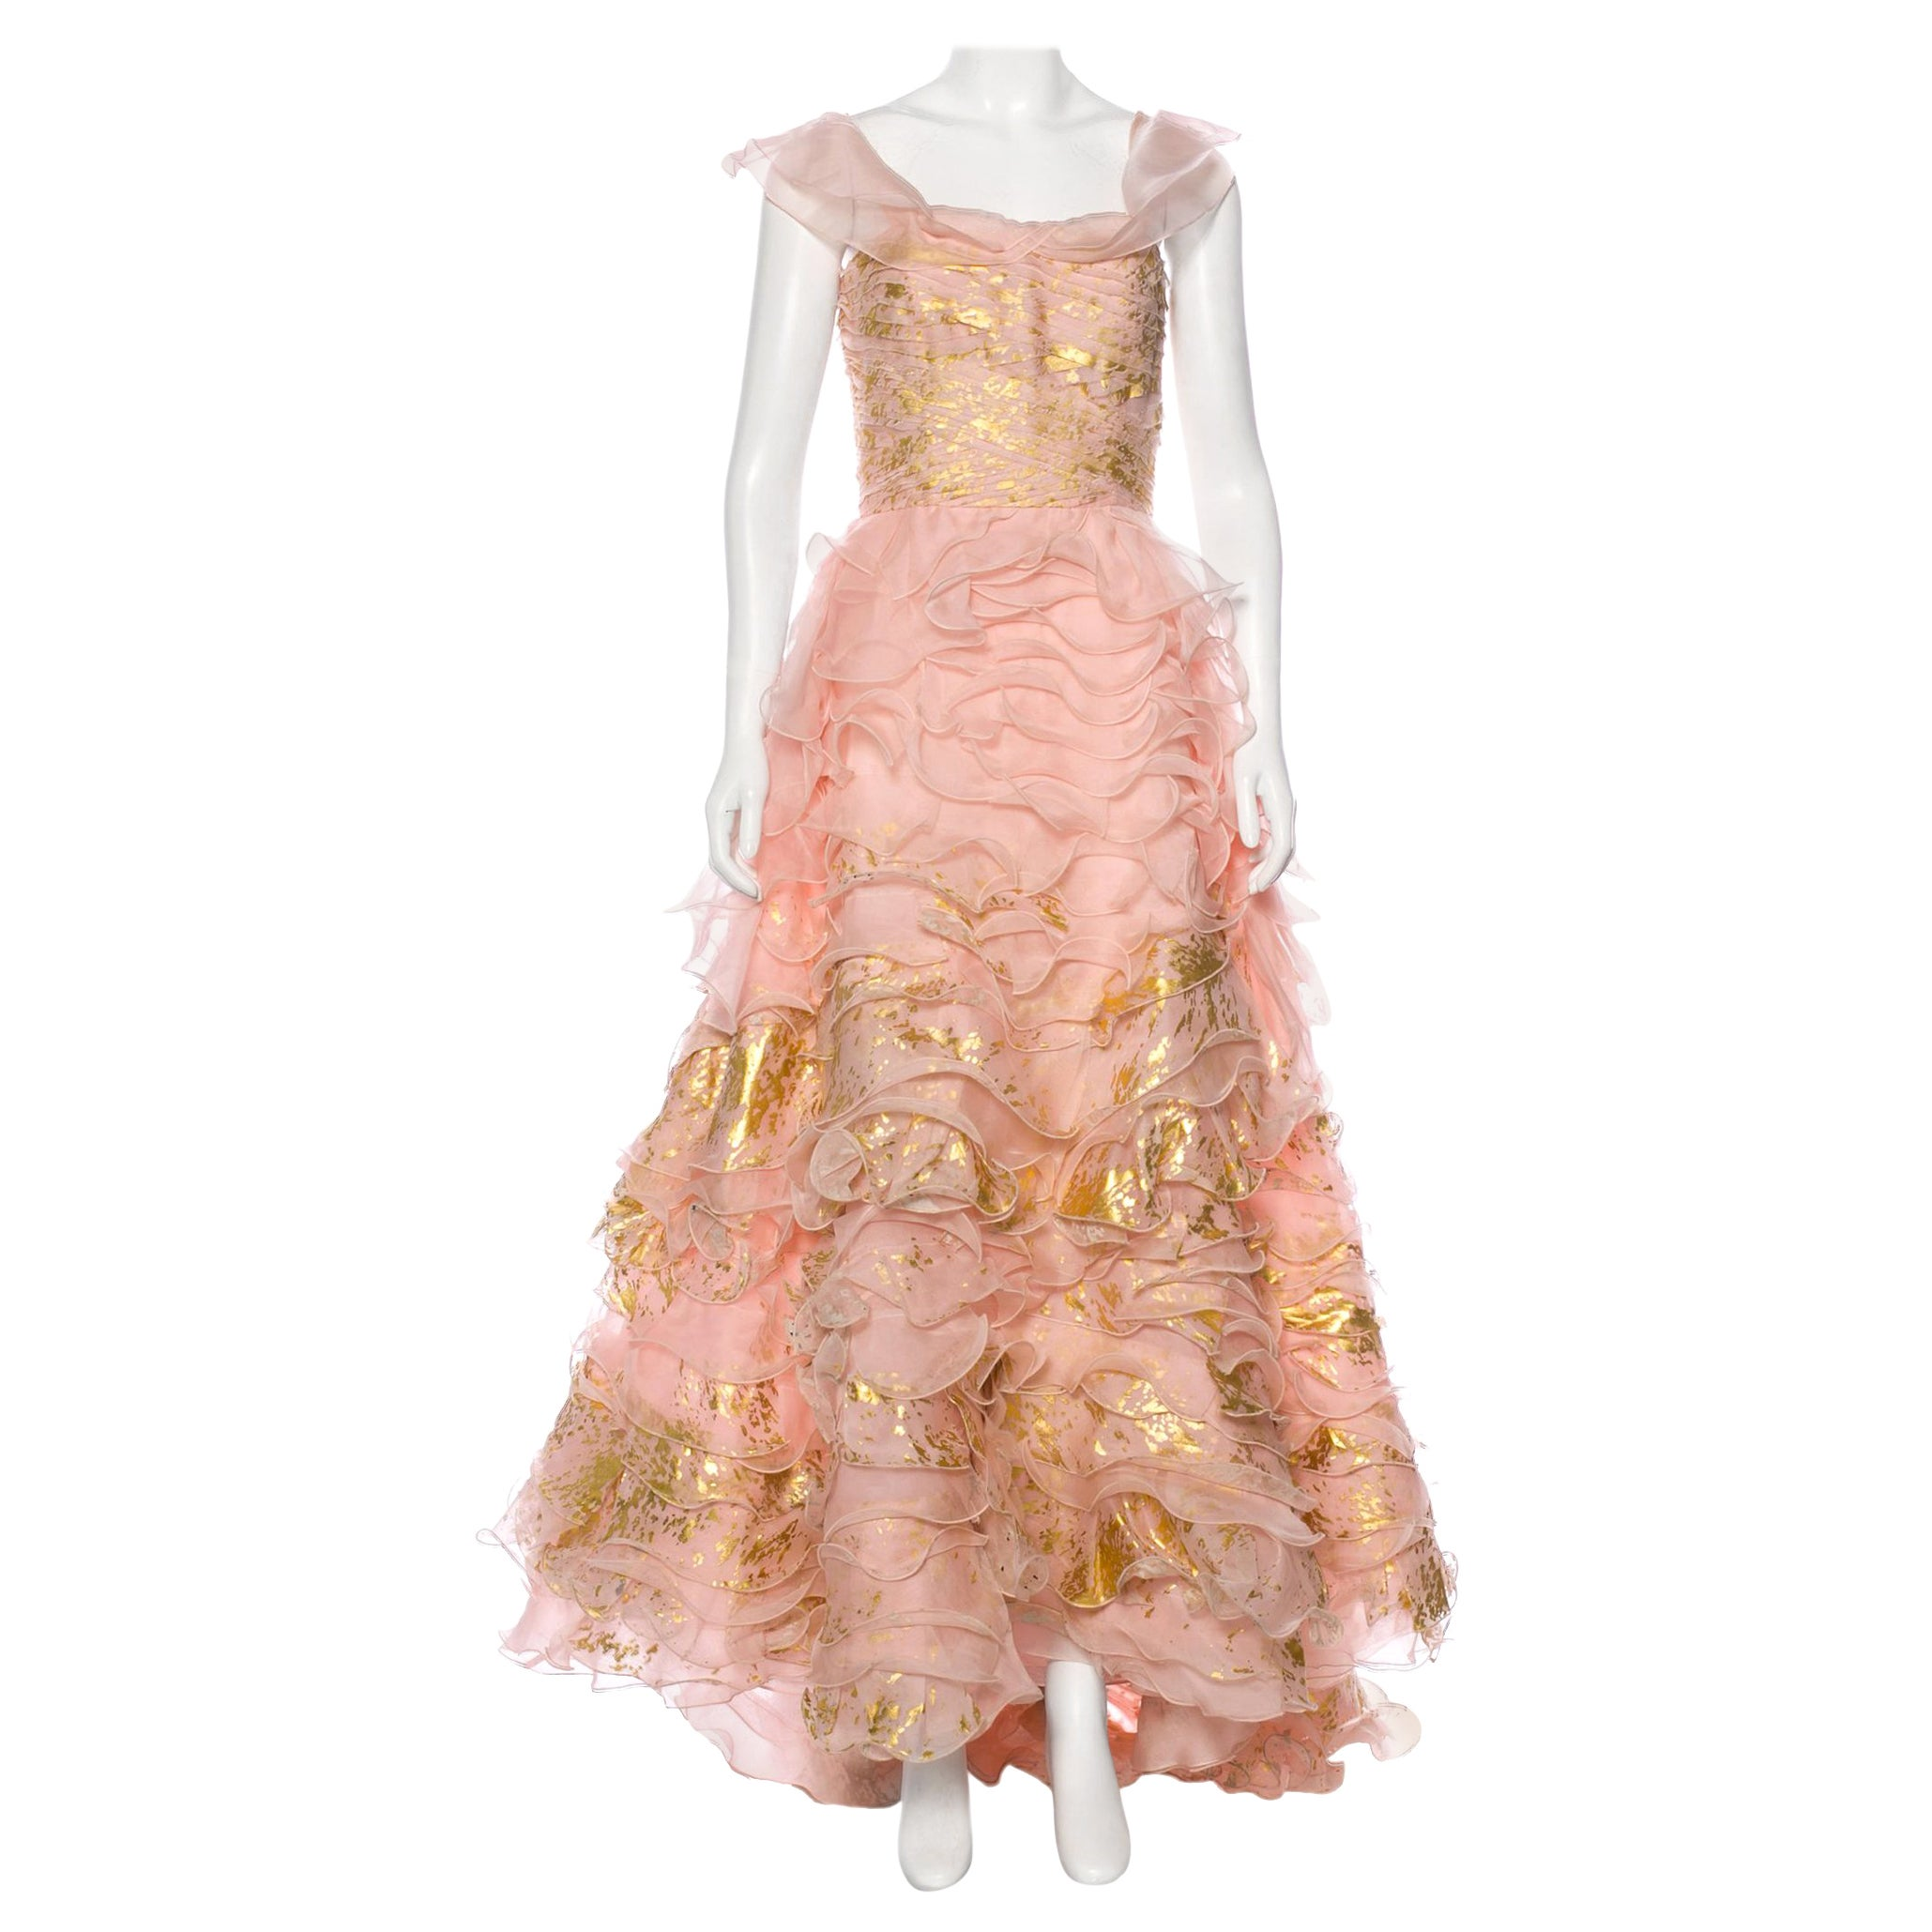 Museum New Oscar De La Renta S/S 2011 Collection Silk Gold Leaf Painted Dress